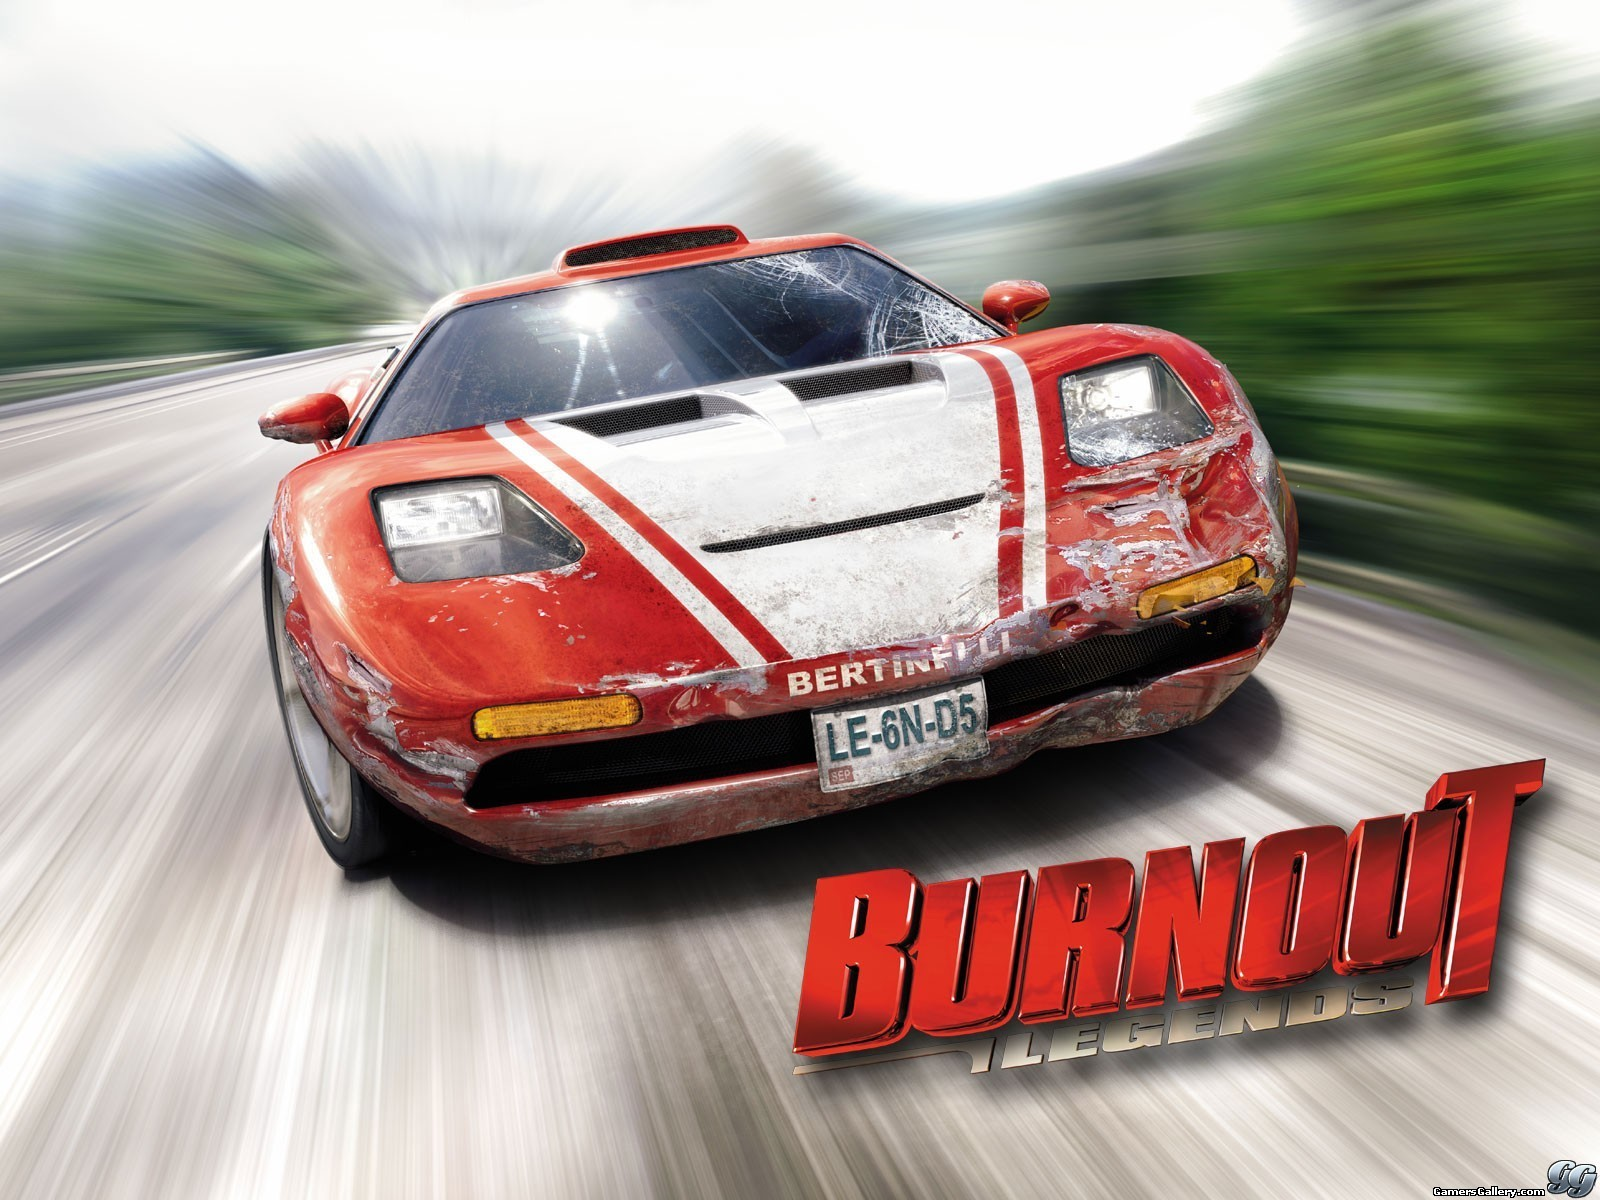 Save Game Burnout 3 Takedown Ps2 Iso Download - dallasletter